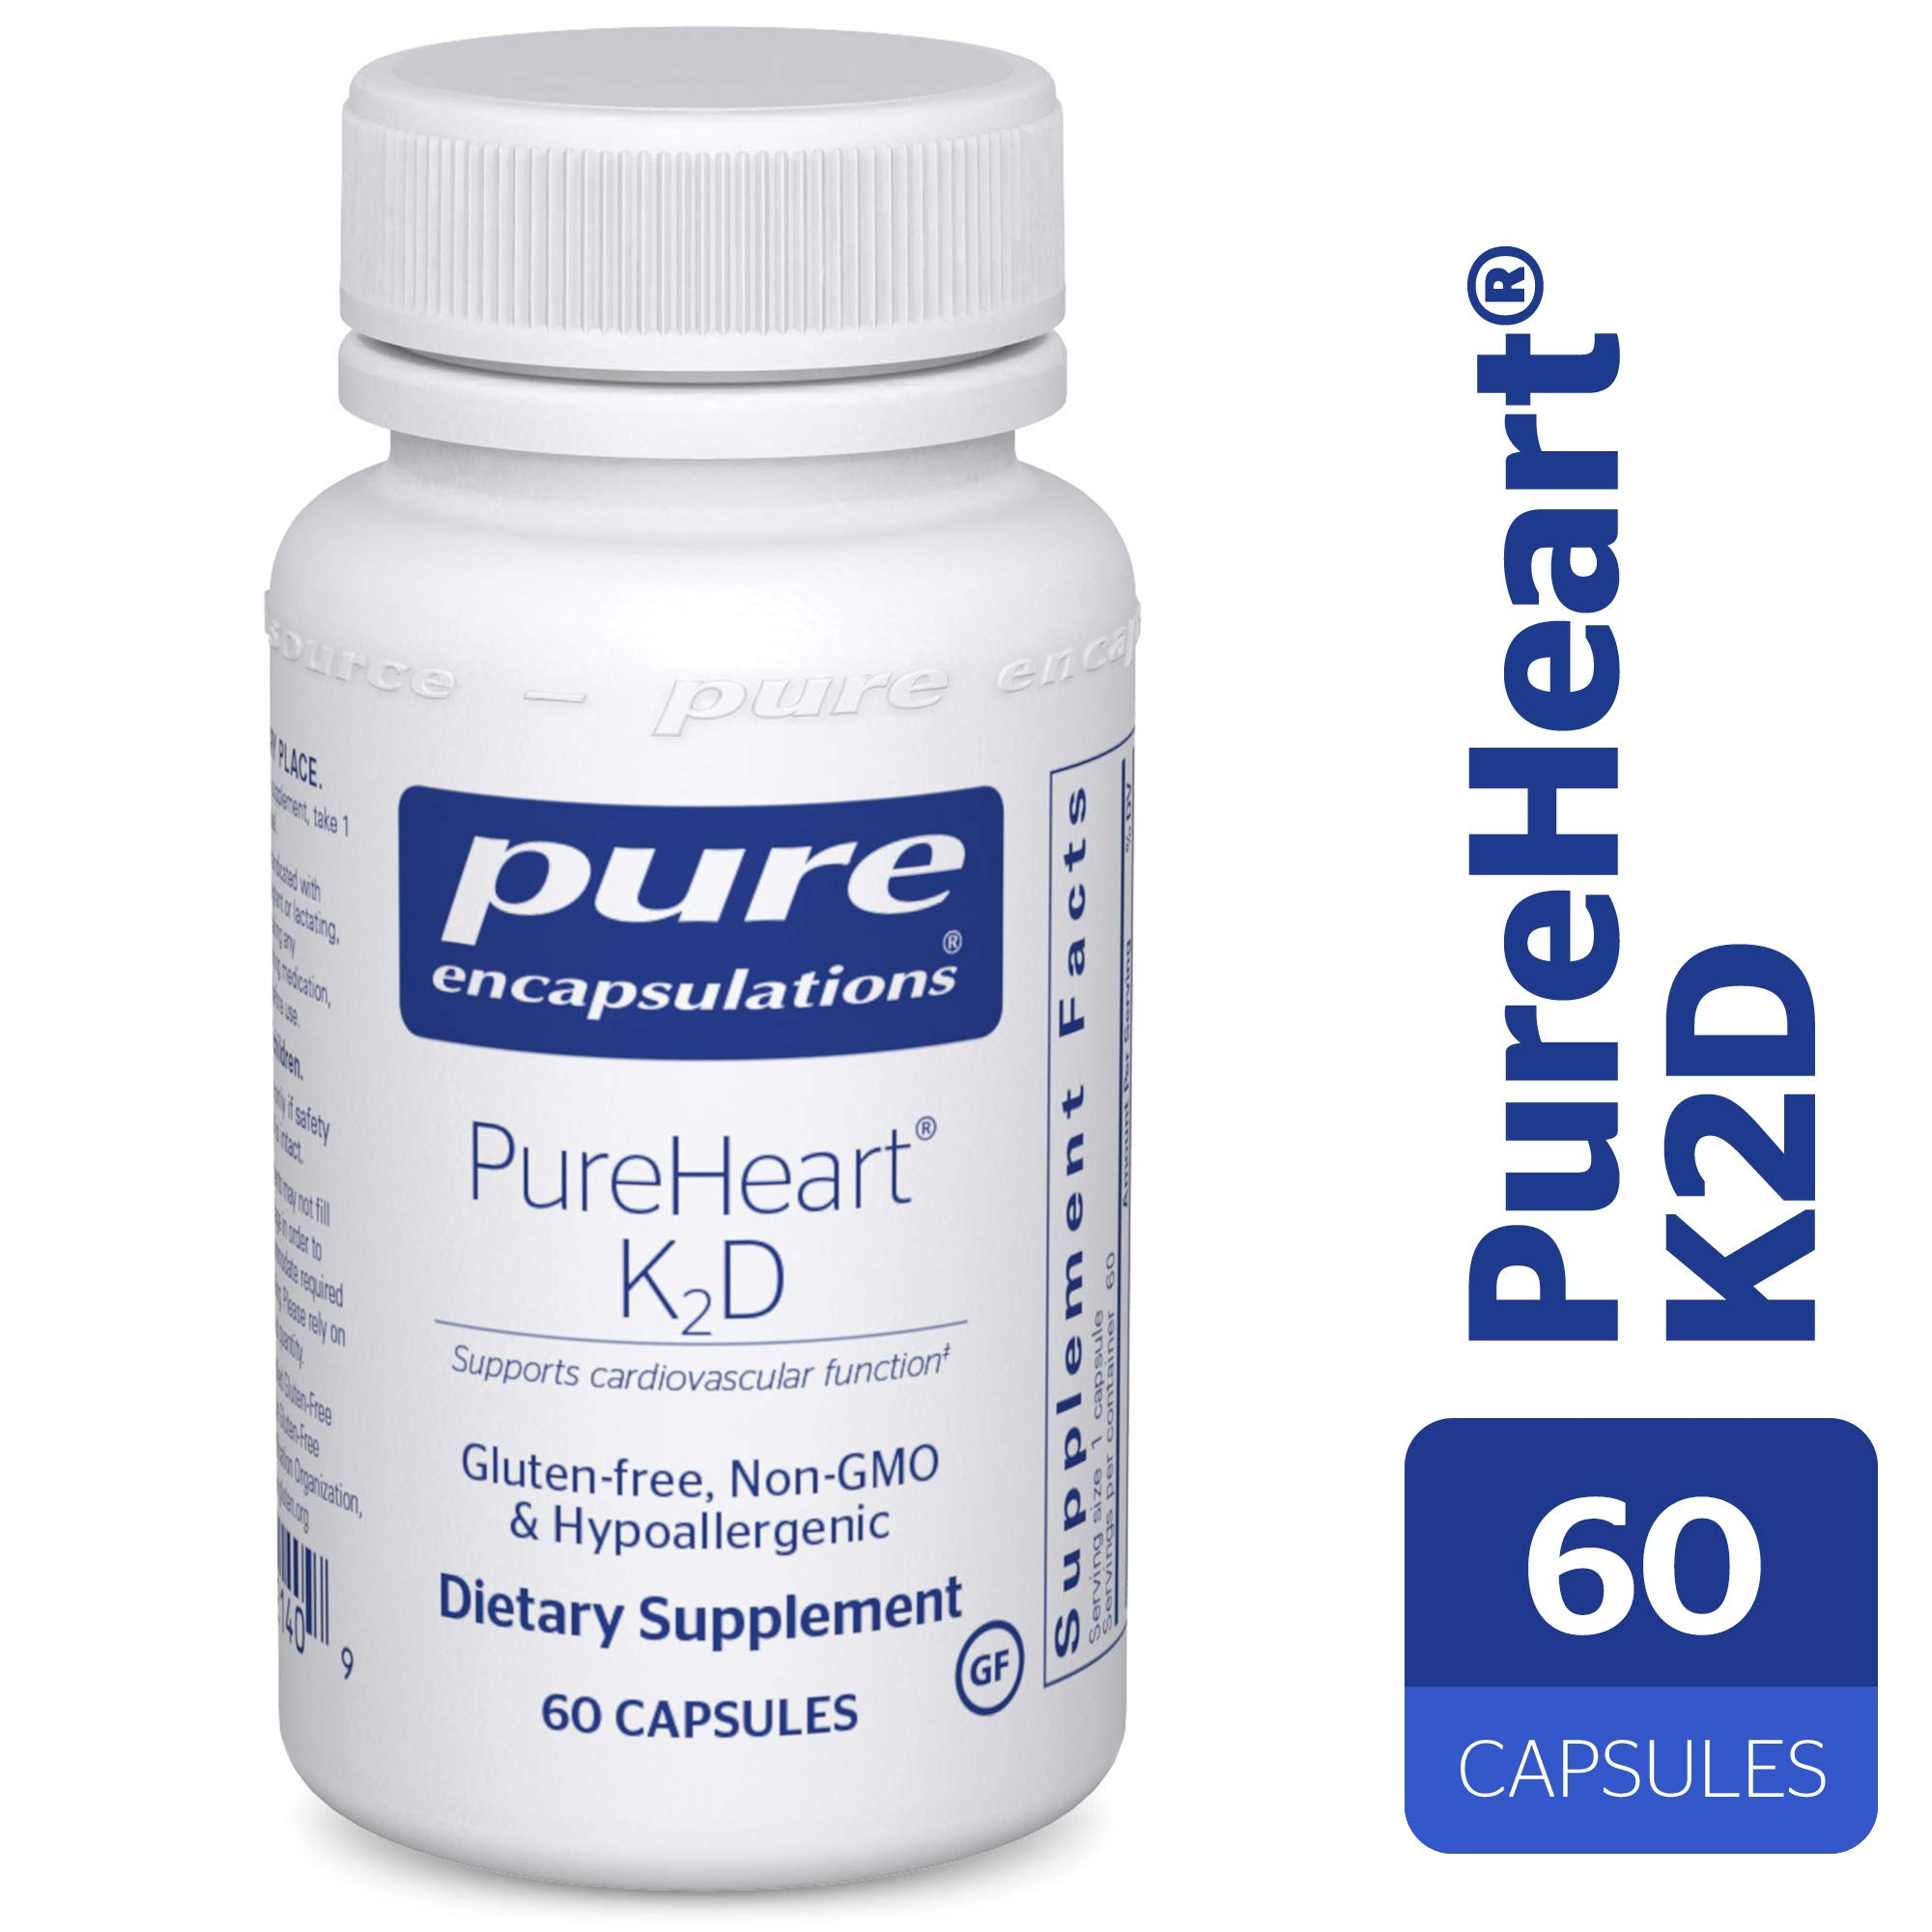 Pure Encapsulations - PureHeart K2D - Hypoallergenic Supplement to Promote Calcium Homeostasis and Cardiovascular Function* - 60 Capsules by Pure Encapsulations